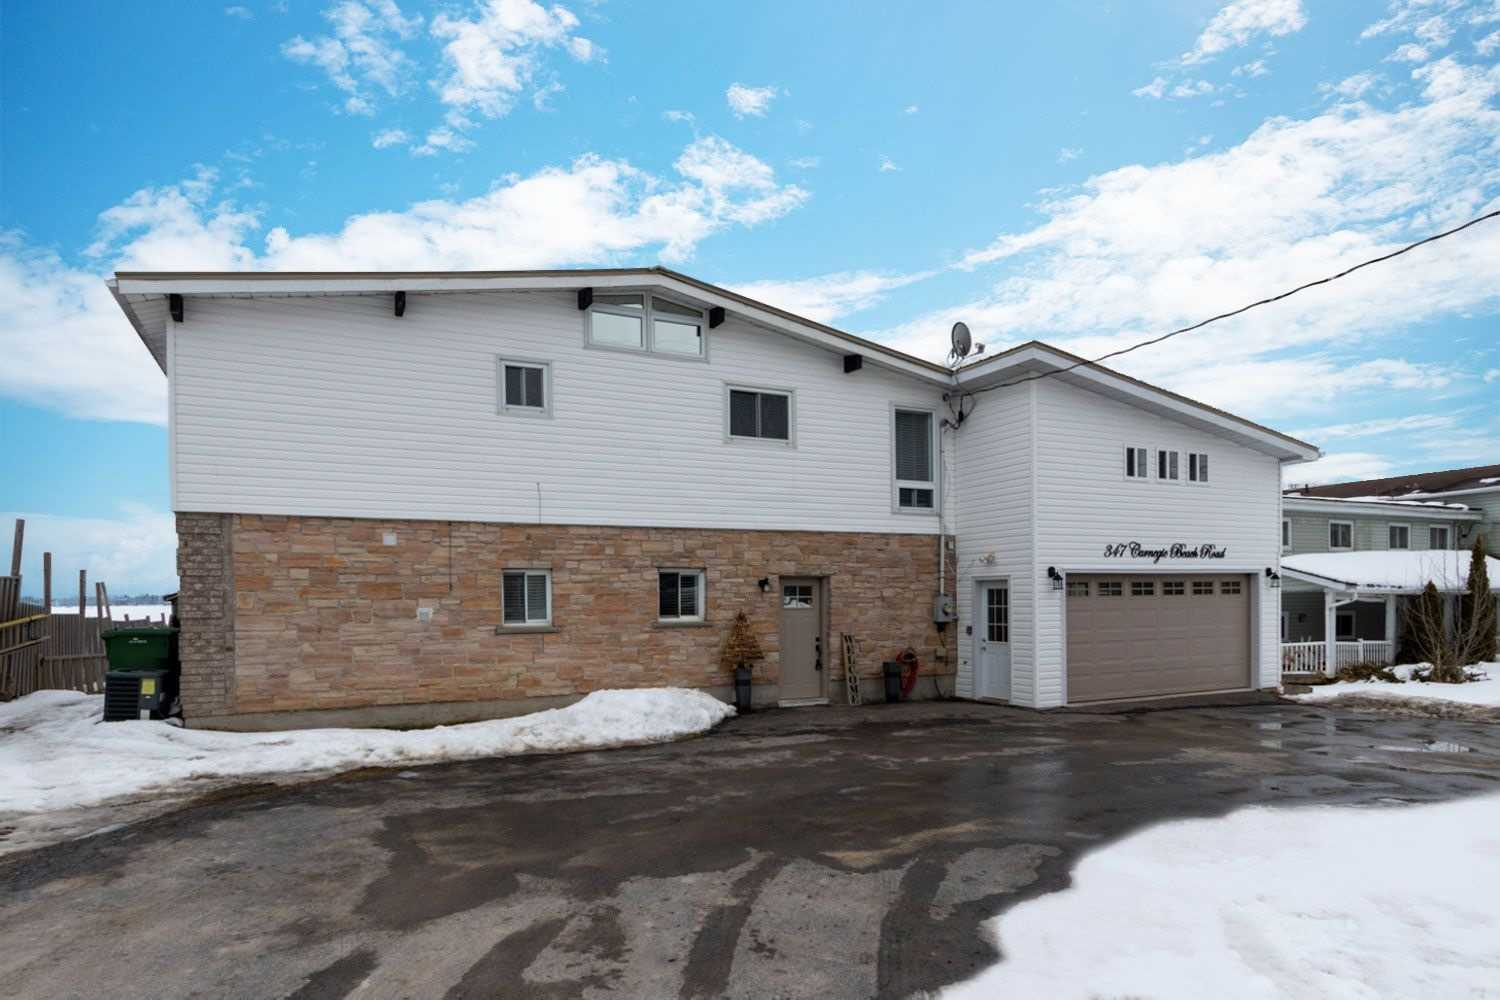 pictures of house for sale MLS: E5127381 located at 347 Carnegie Beach Rd, Scugog L9L1B6